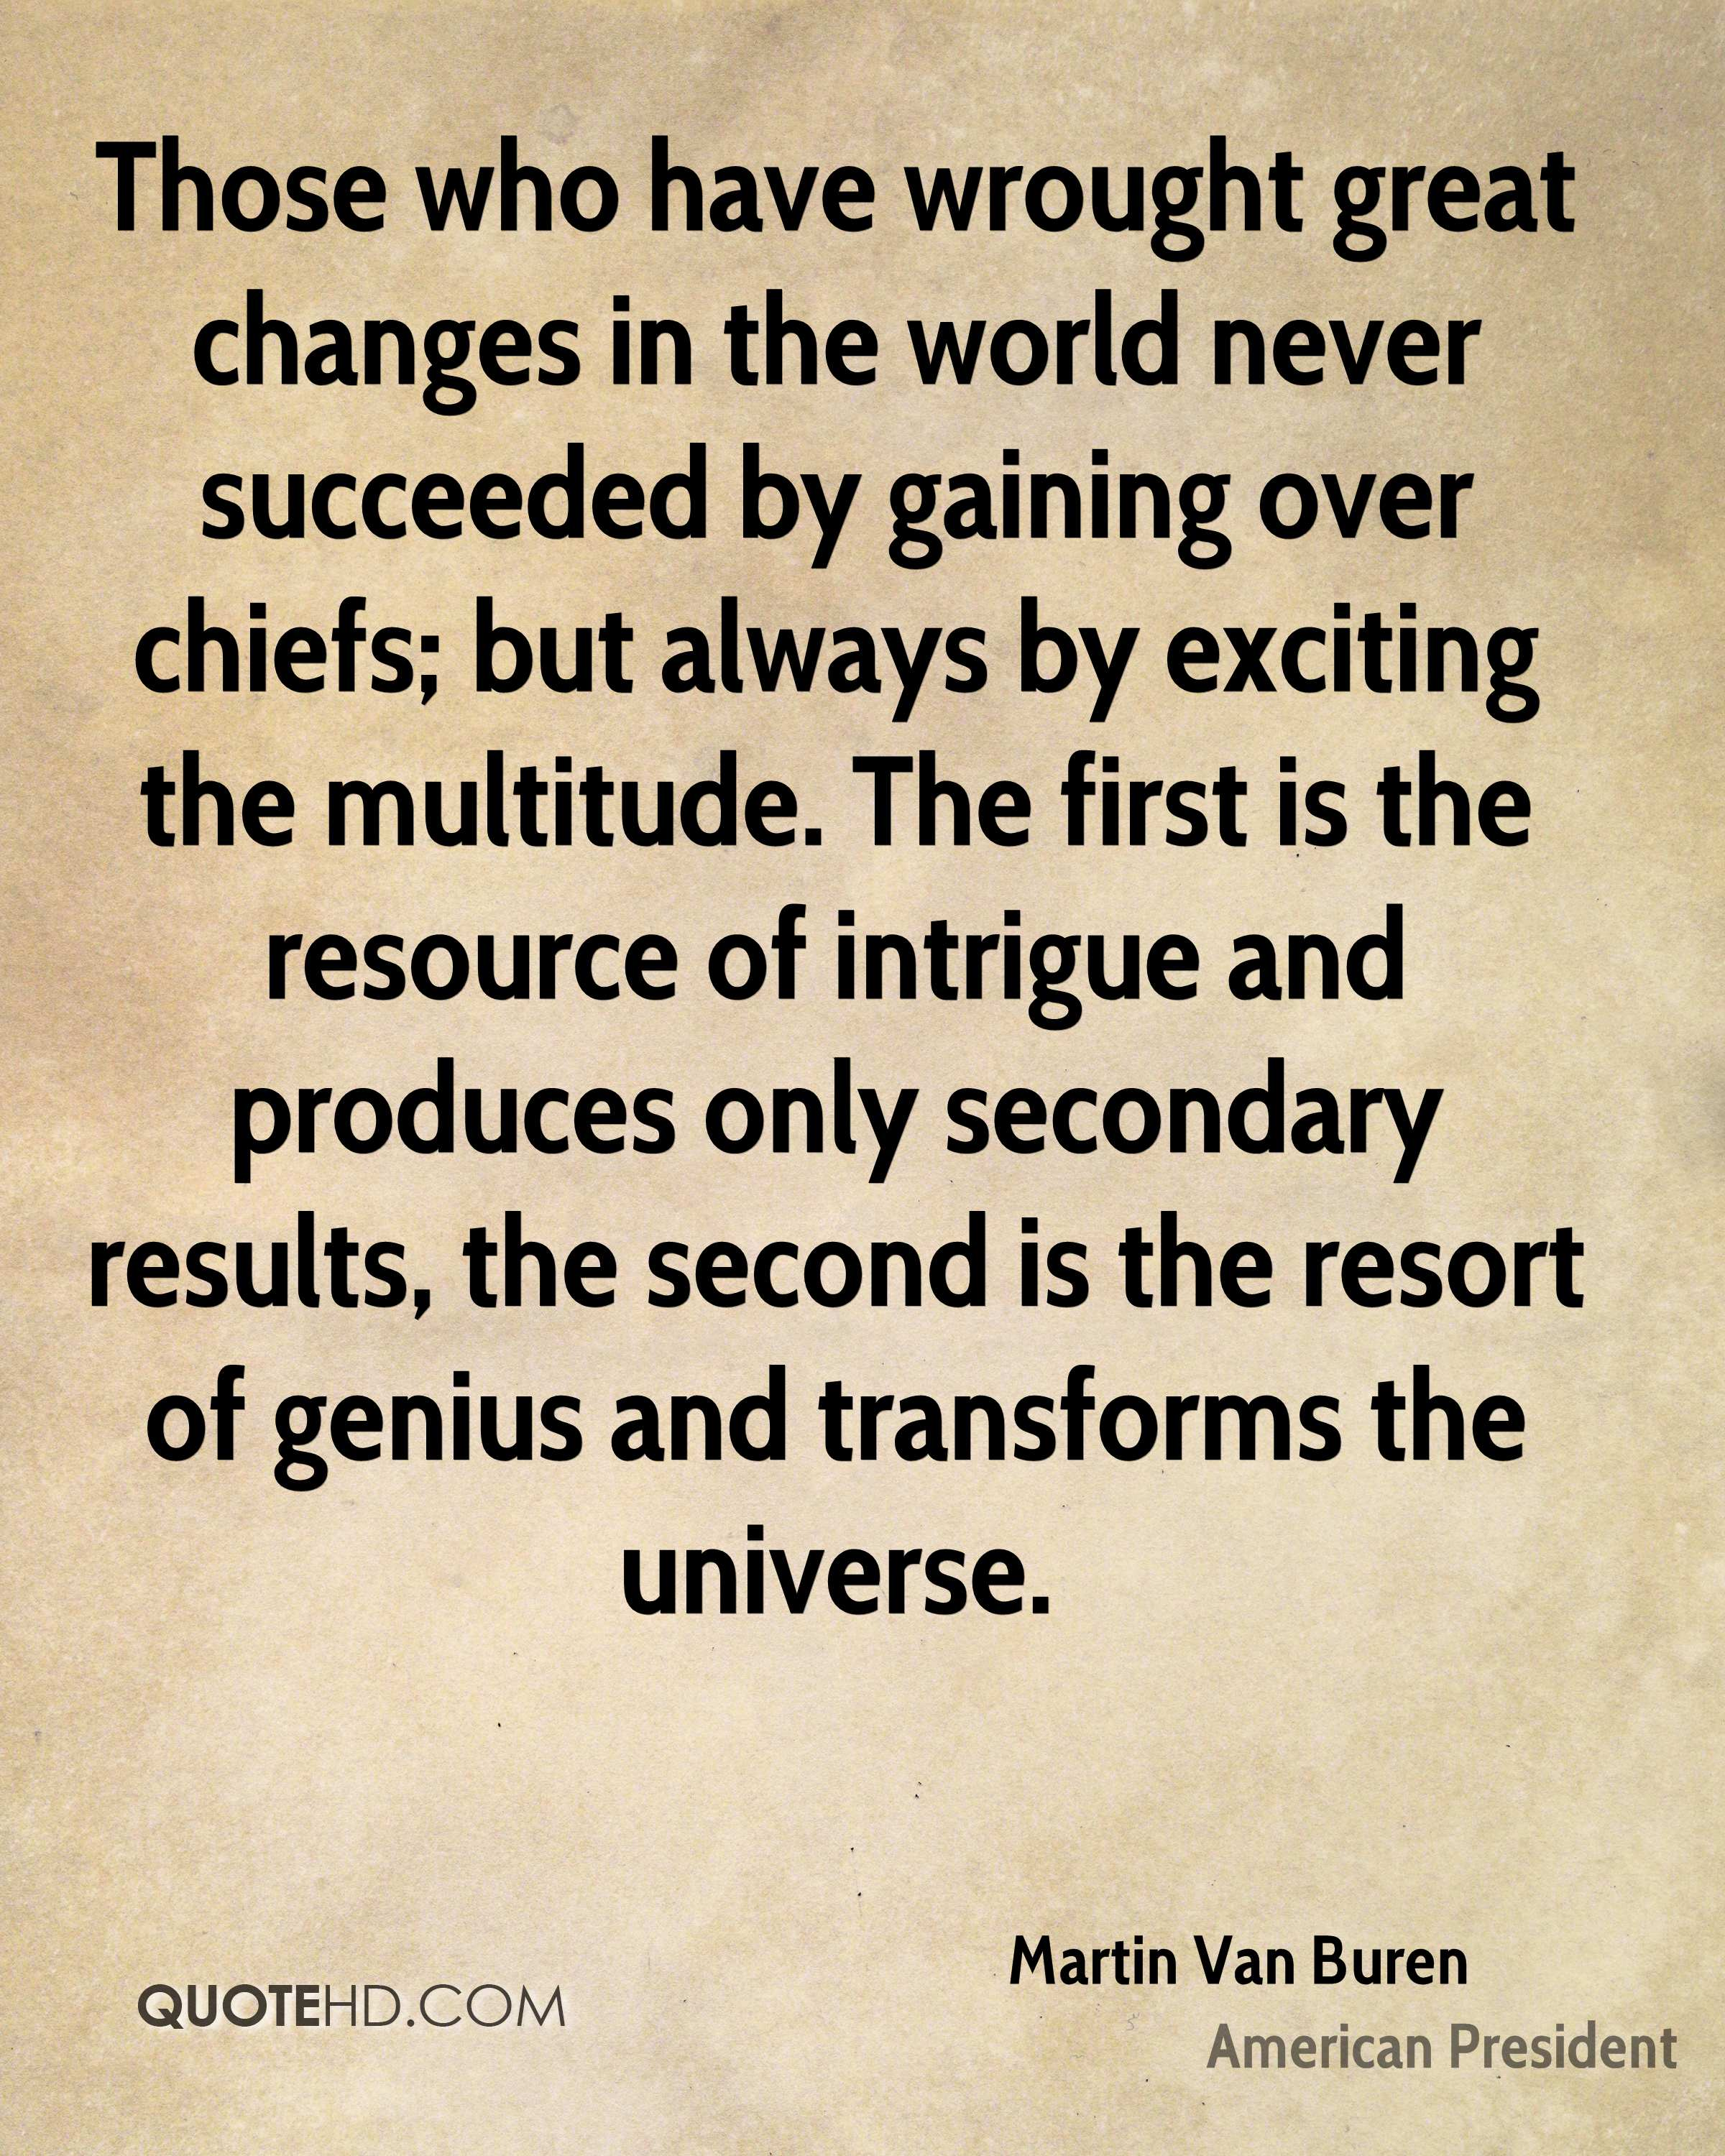 Those who have wrought great changes in the world never succeeded by gaining over chiefs; but always by exciting the multitude. The first is the resource of intrigue and produces only secondary results, the second is the resort of genius and transforms the universe.